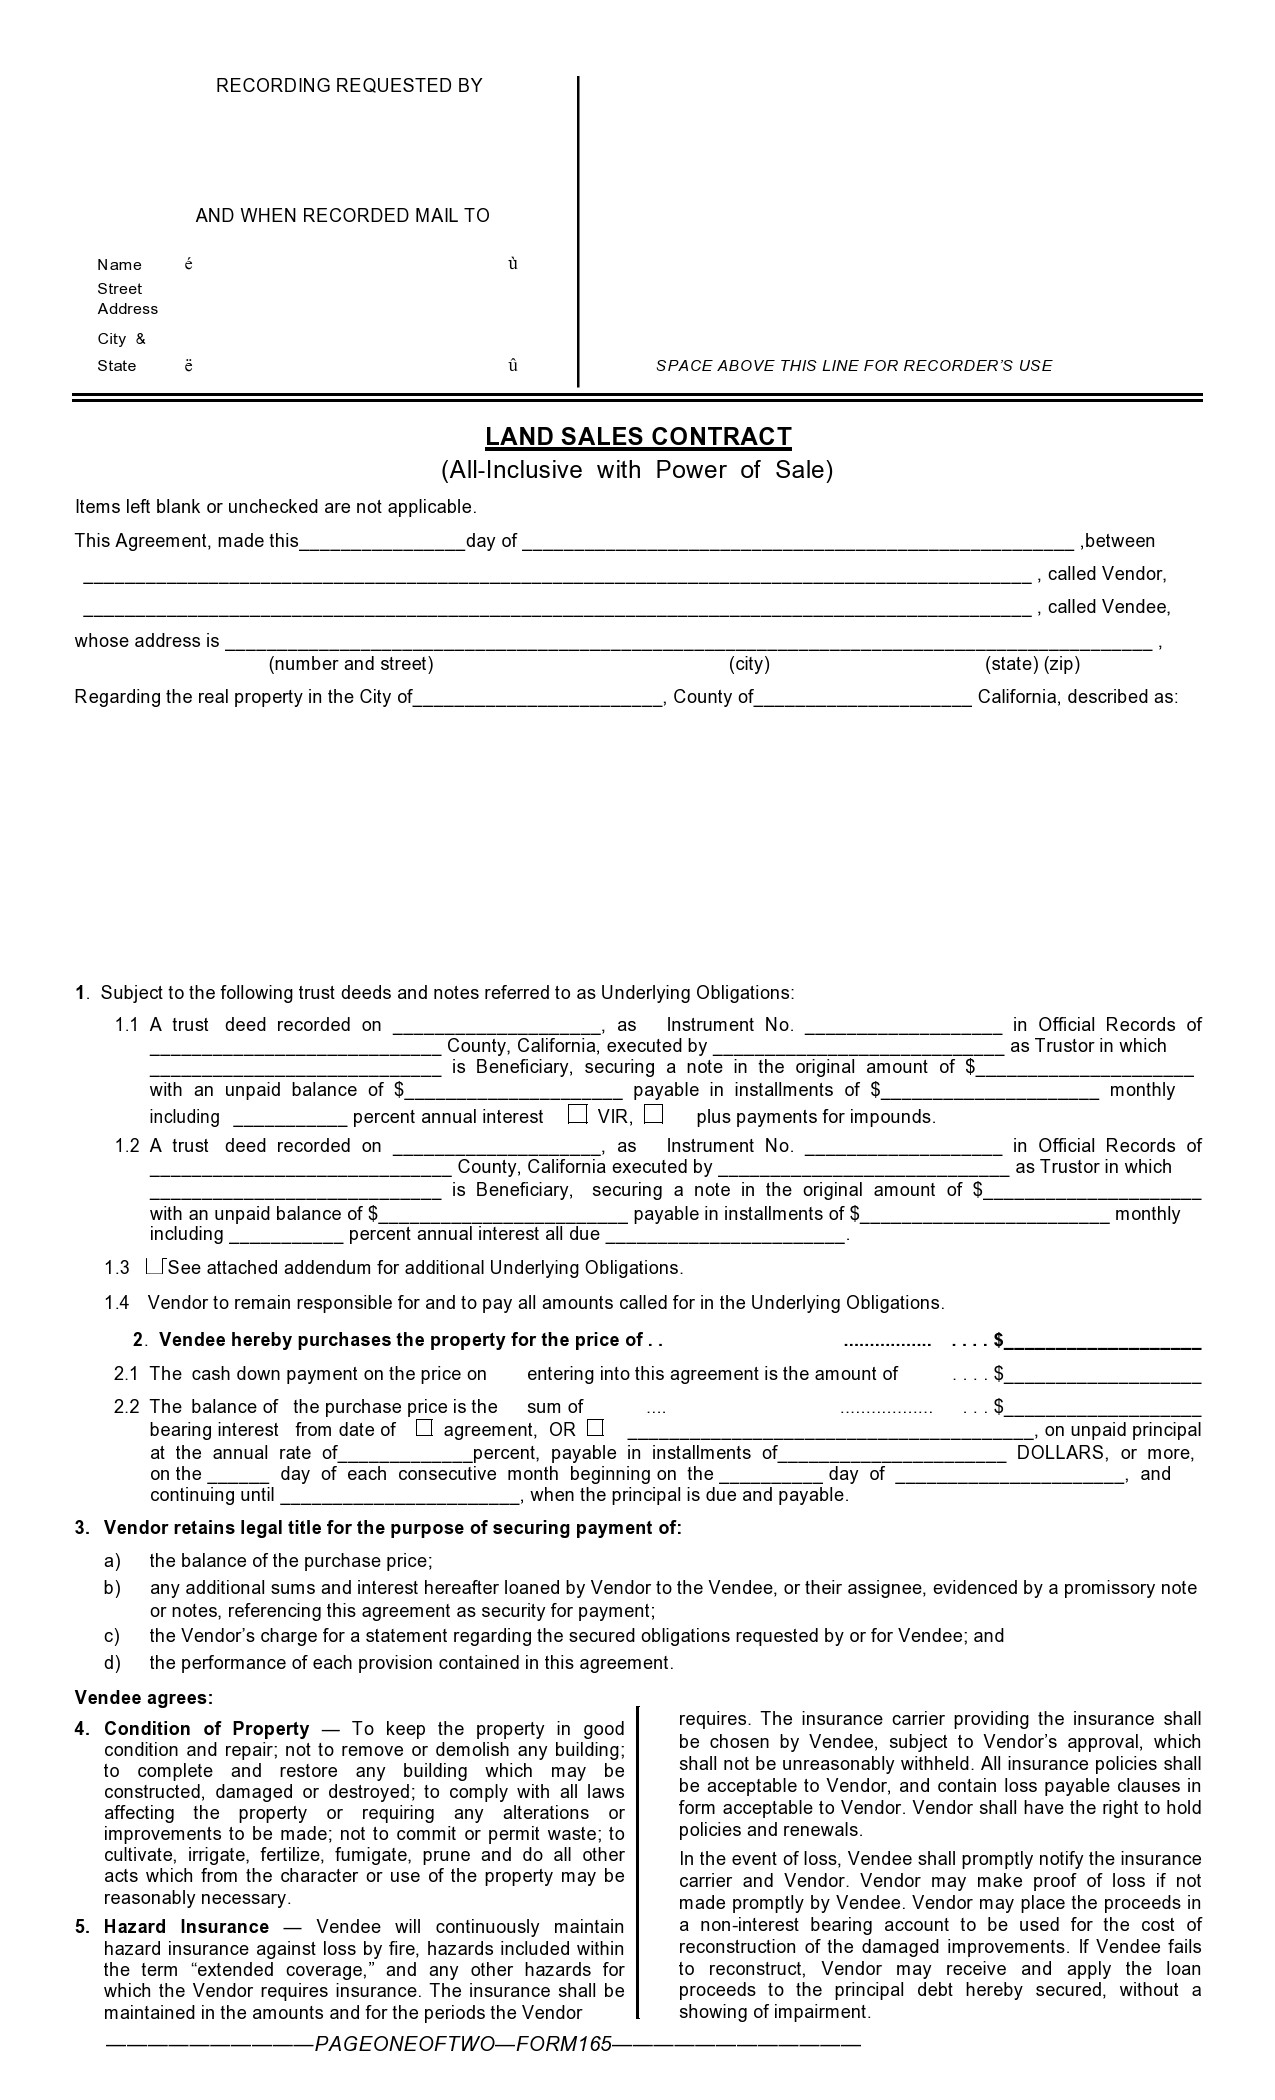 Free land contract form 12